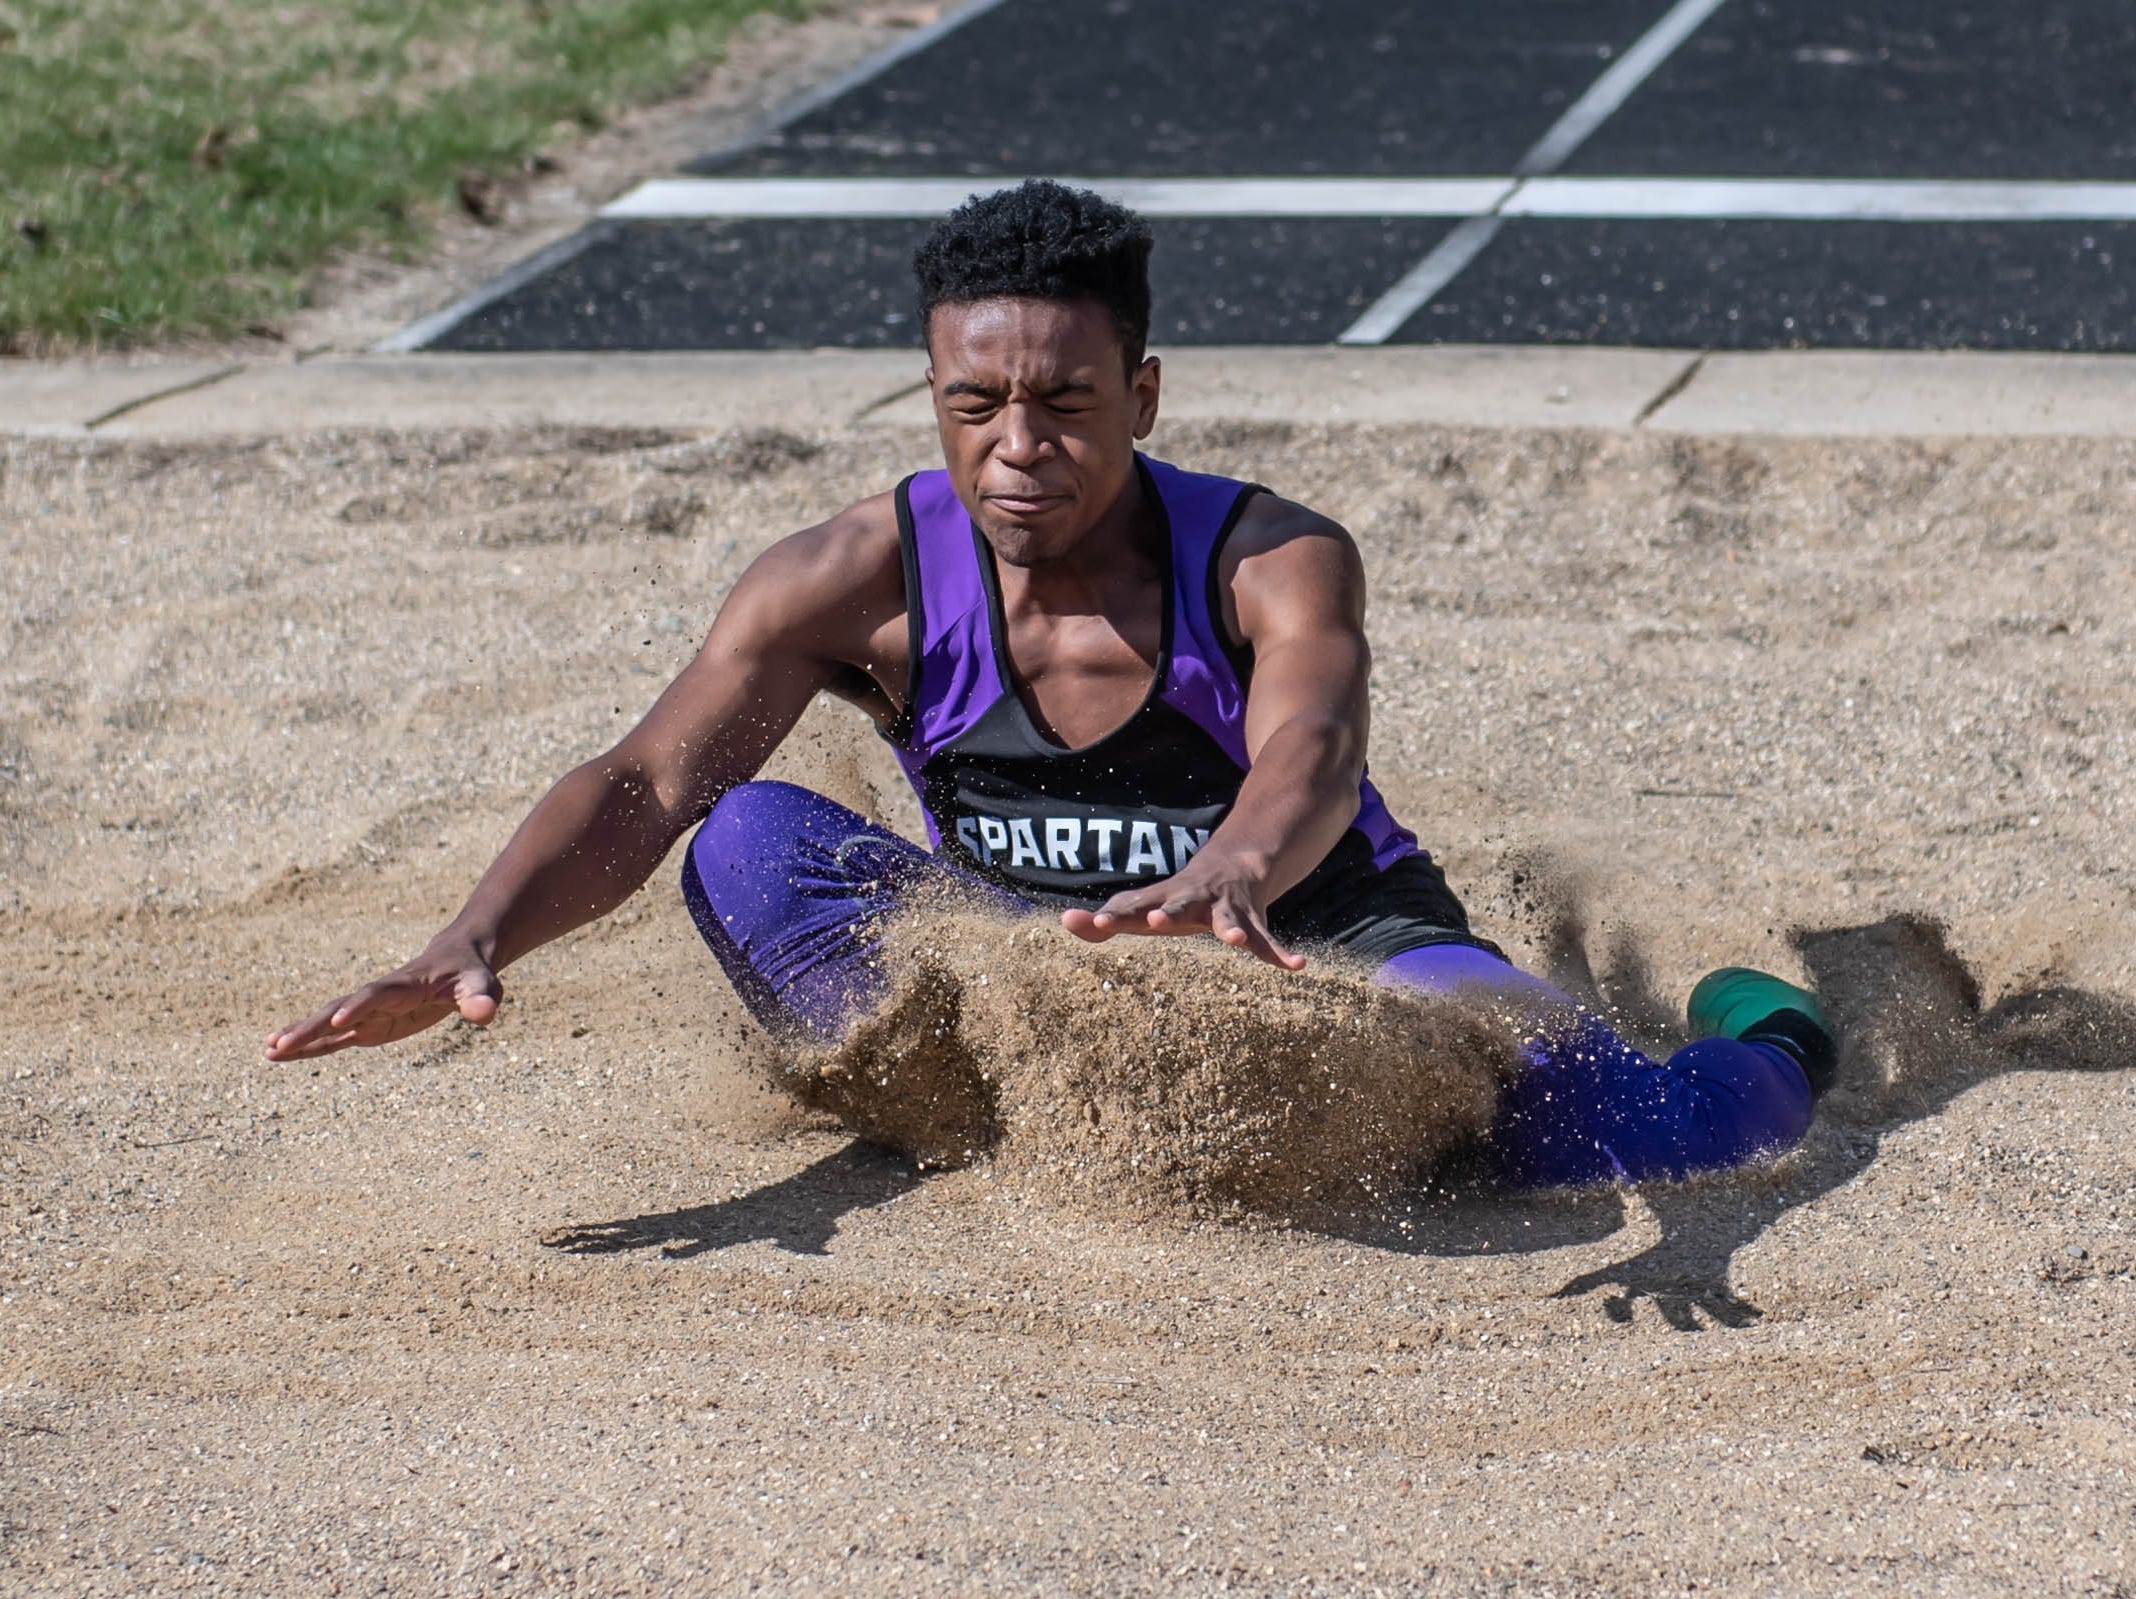 Lakeview's Elijah Smith competes in the long jump at Lakeview High School during a dual meet held on 4/9/19.